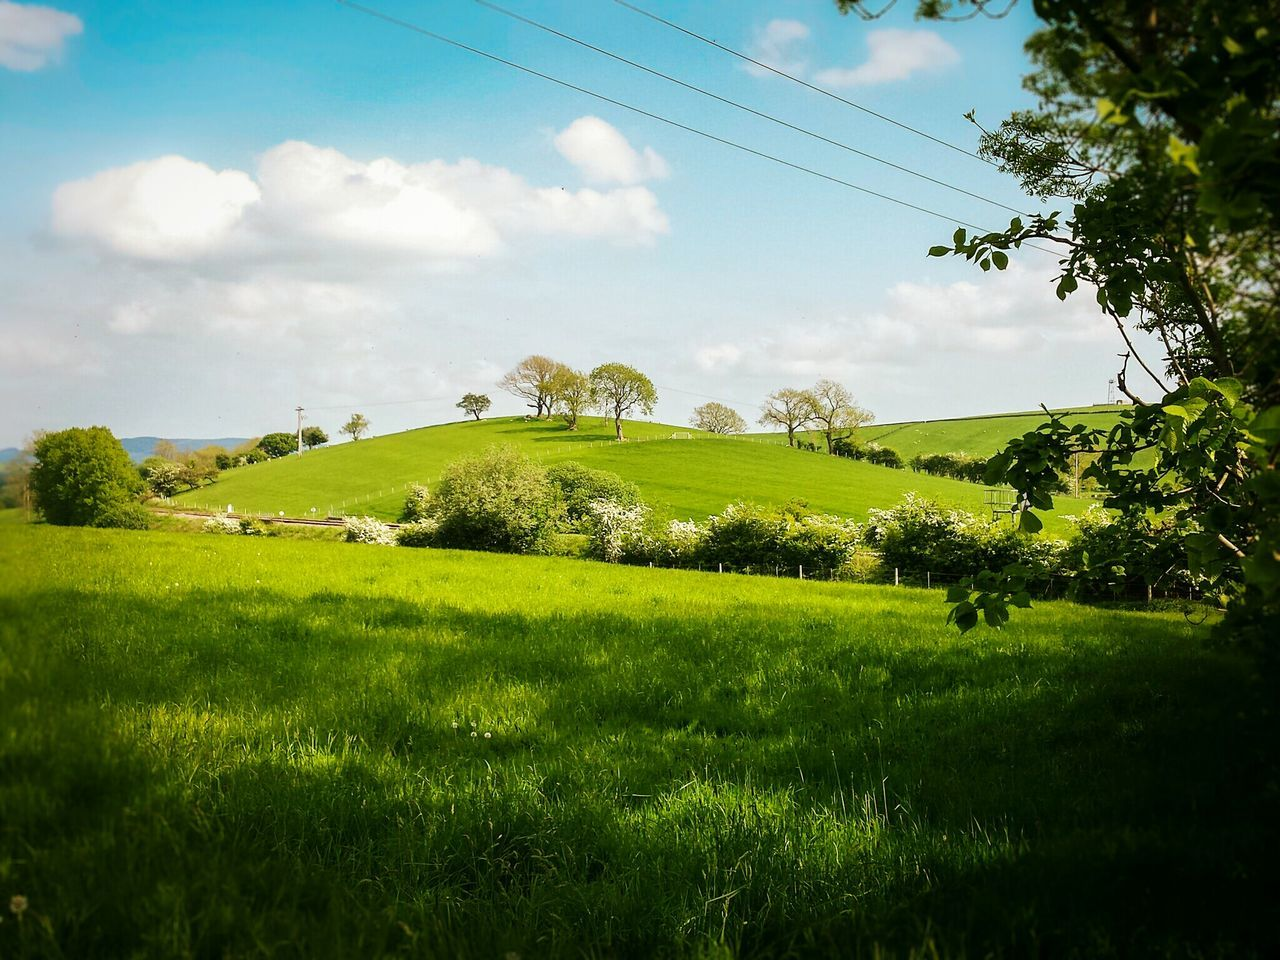 Springtime Spring 2016 Spring Nature Nature Photography View POV Gargrave Yorkshire Dales Light And Shadow Yorkshire North Yorkshire Hillside Hills Hill Fieldscape Fields Field Grass Lush Green Landscapes Landscape The Great Outdoors - 2016 EyeEm Awards Trees